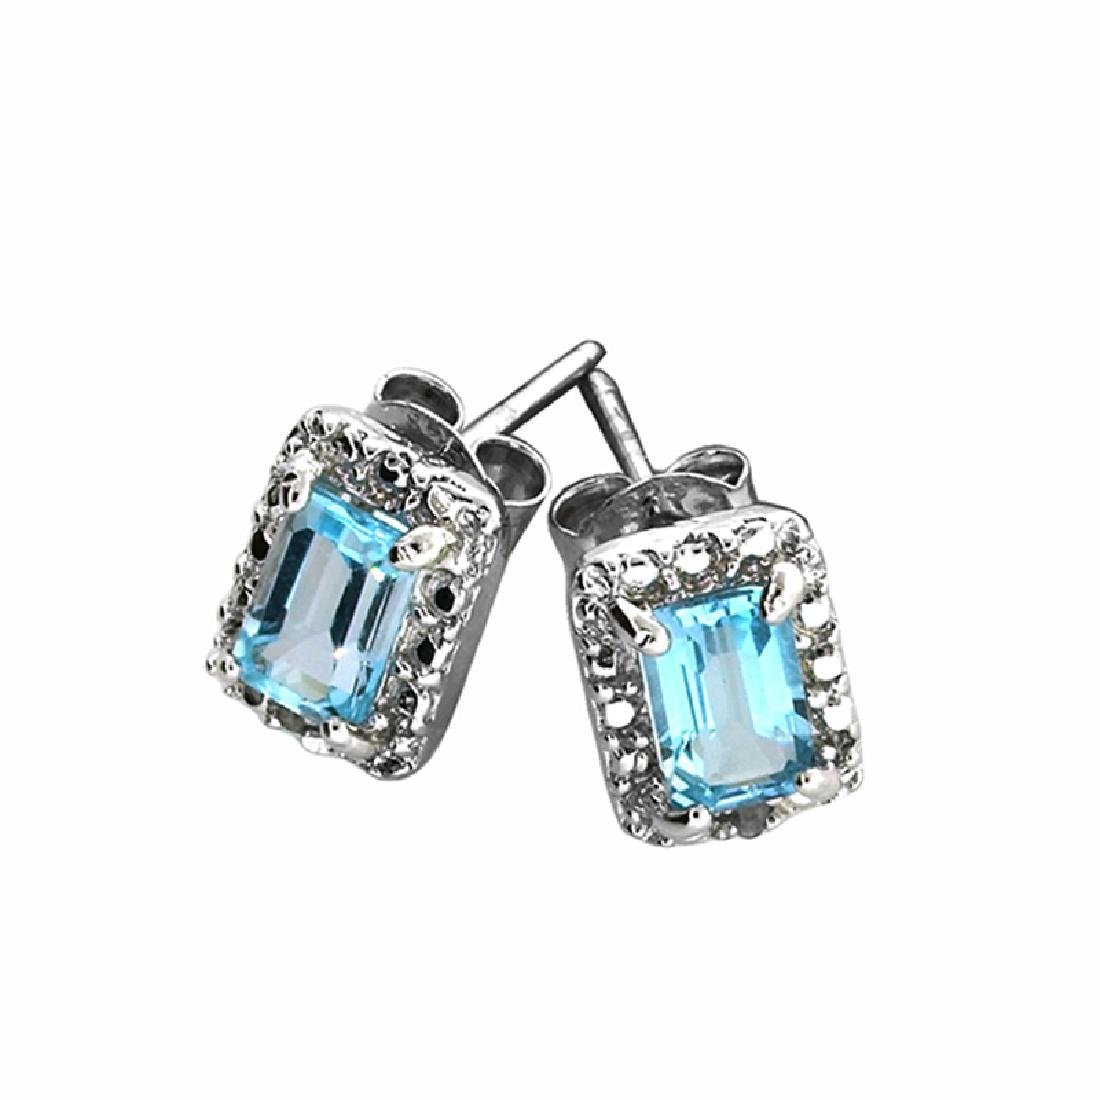 Blue Topaz and Sterling Silver Earring and Pendant Set - 2